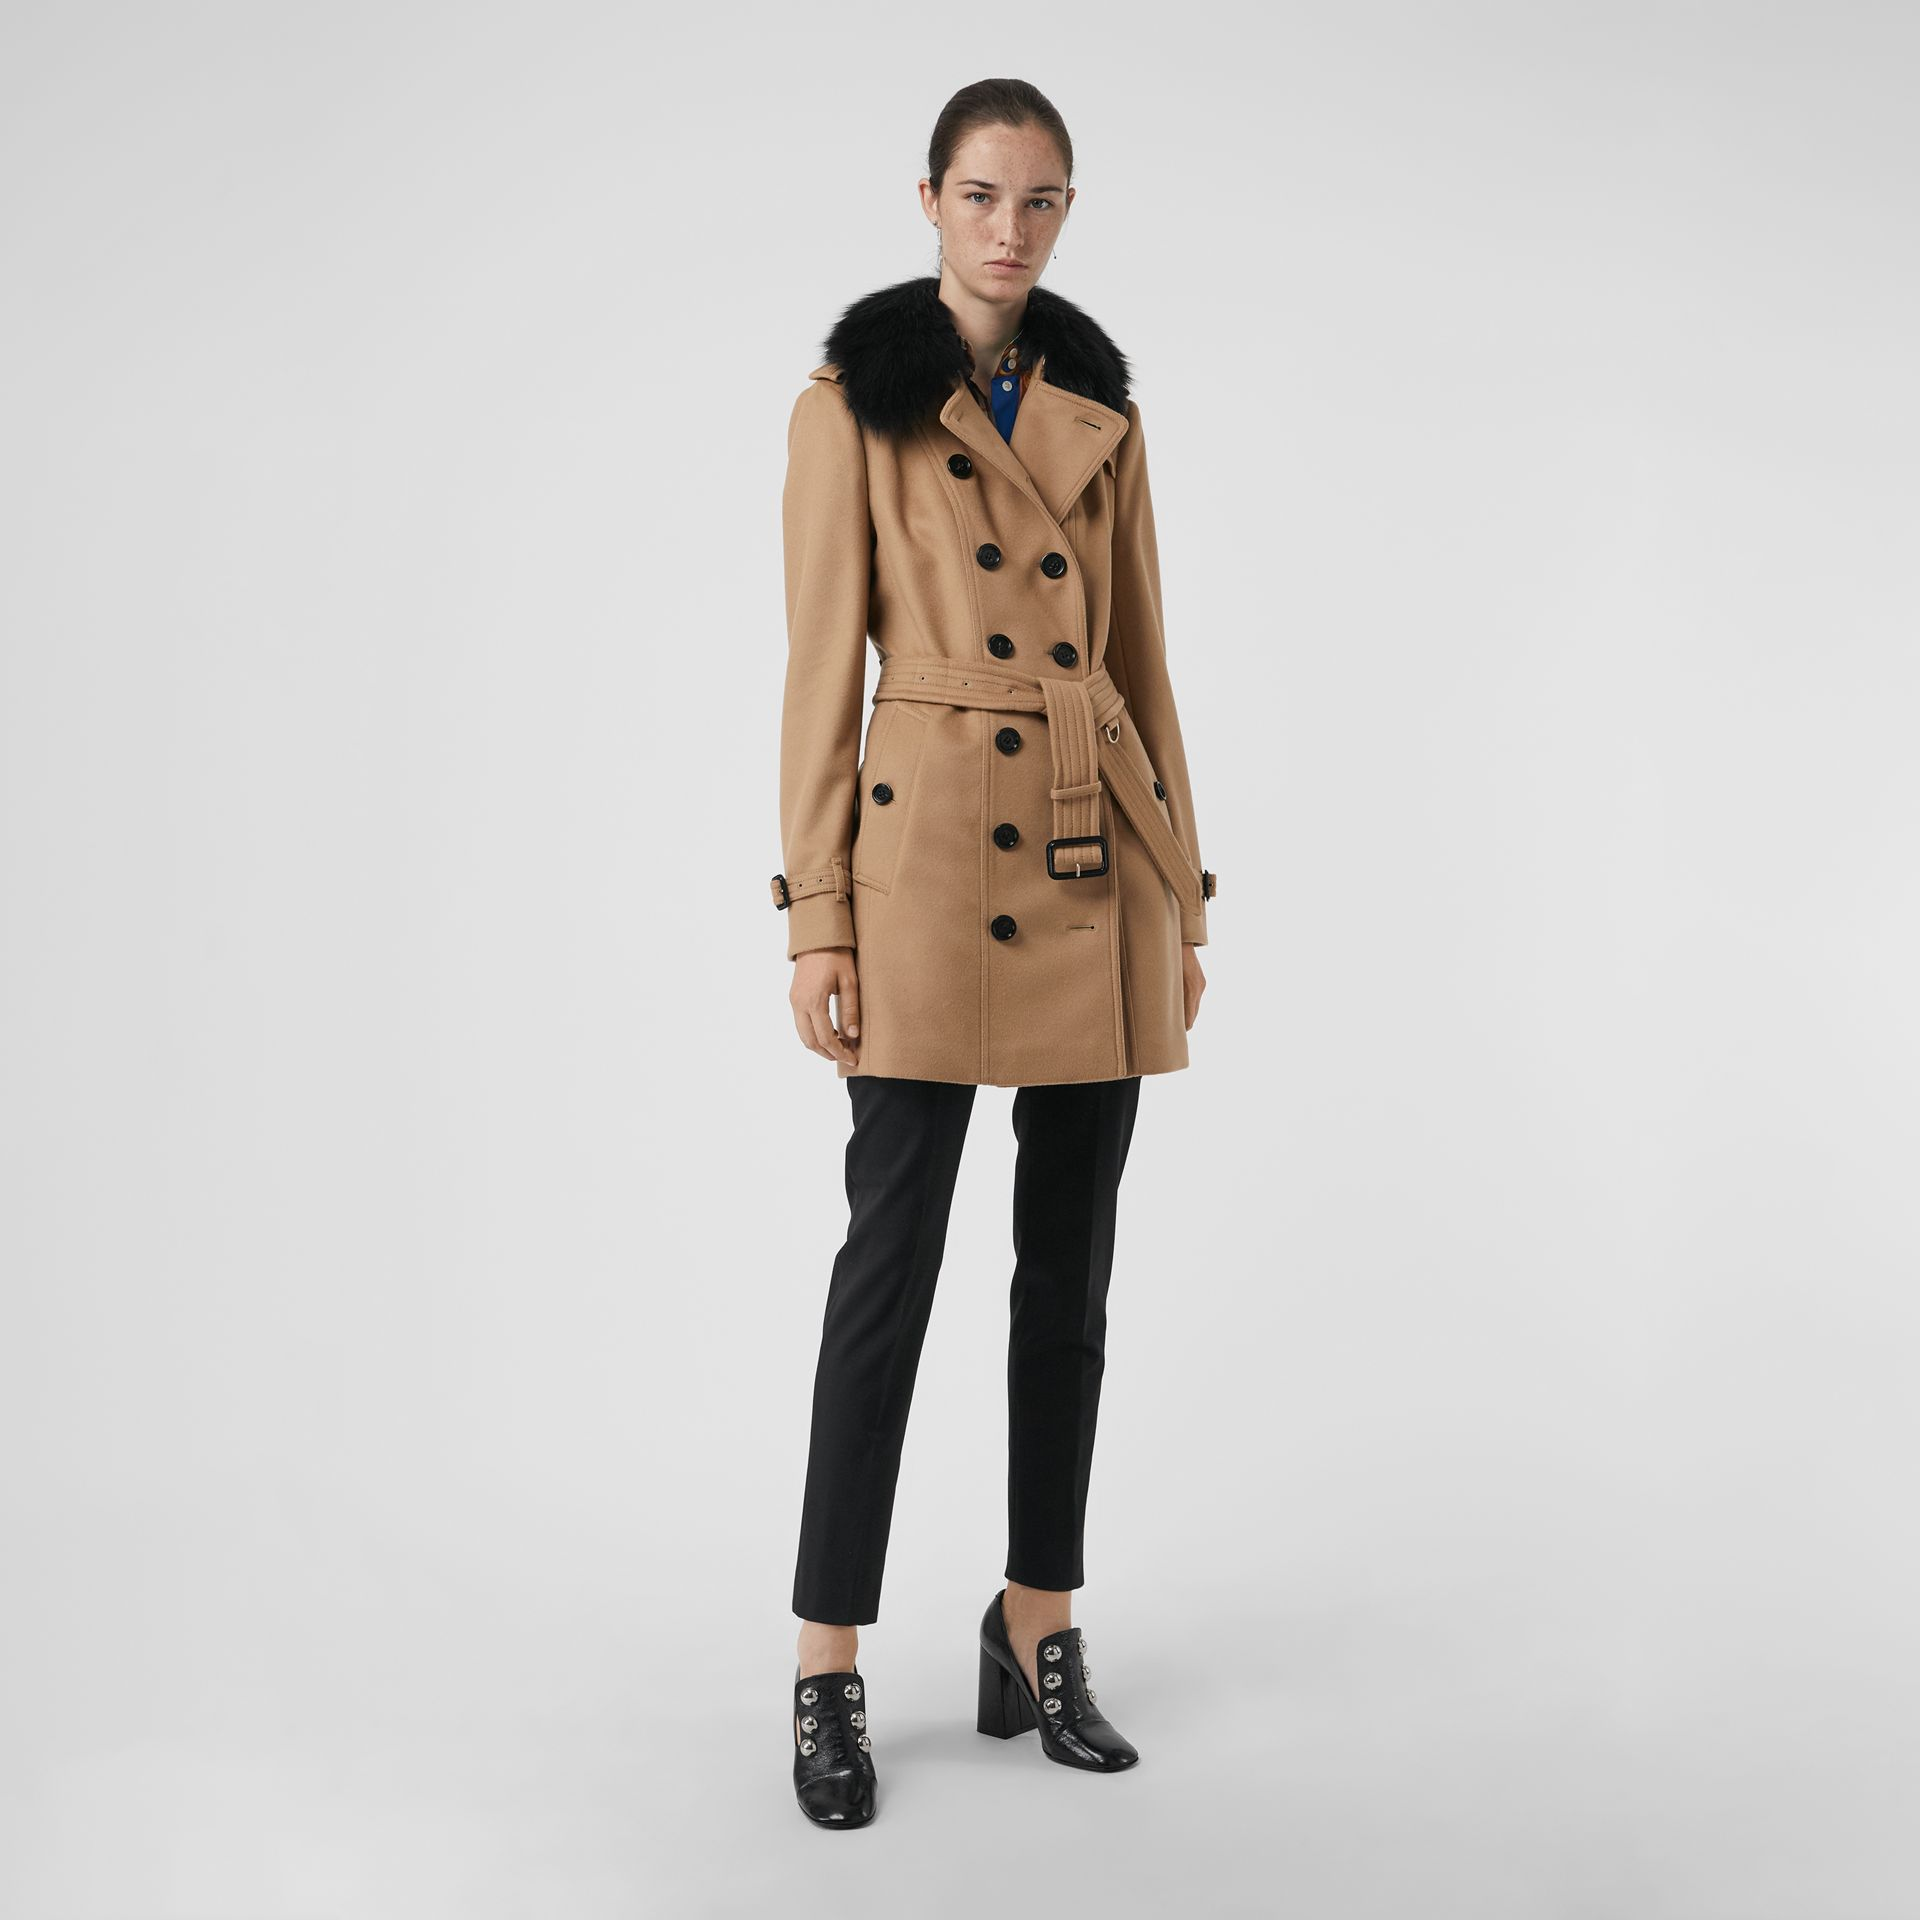 Wool Cashmere Trench Coat with Fur Collar in Camel - Women | Burberry United States - gallery image 5